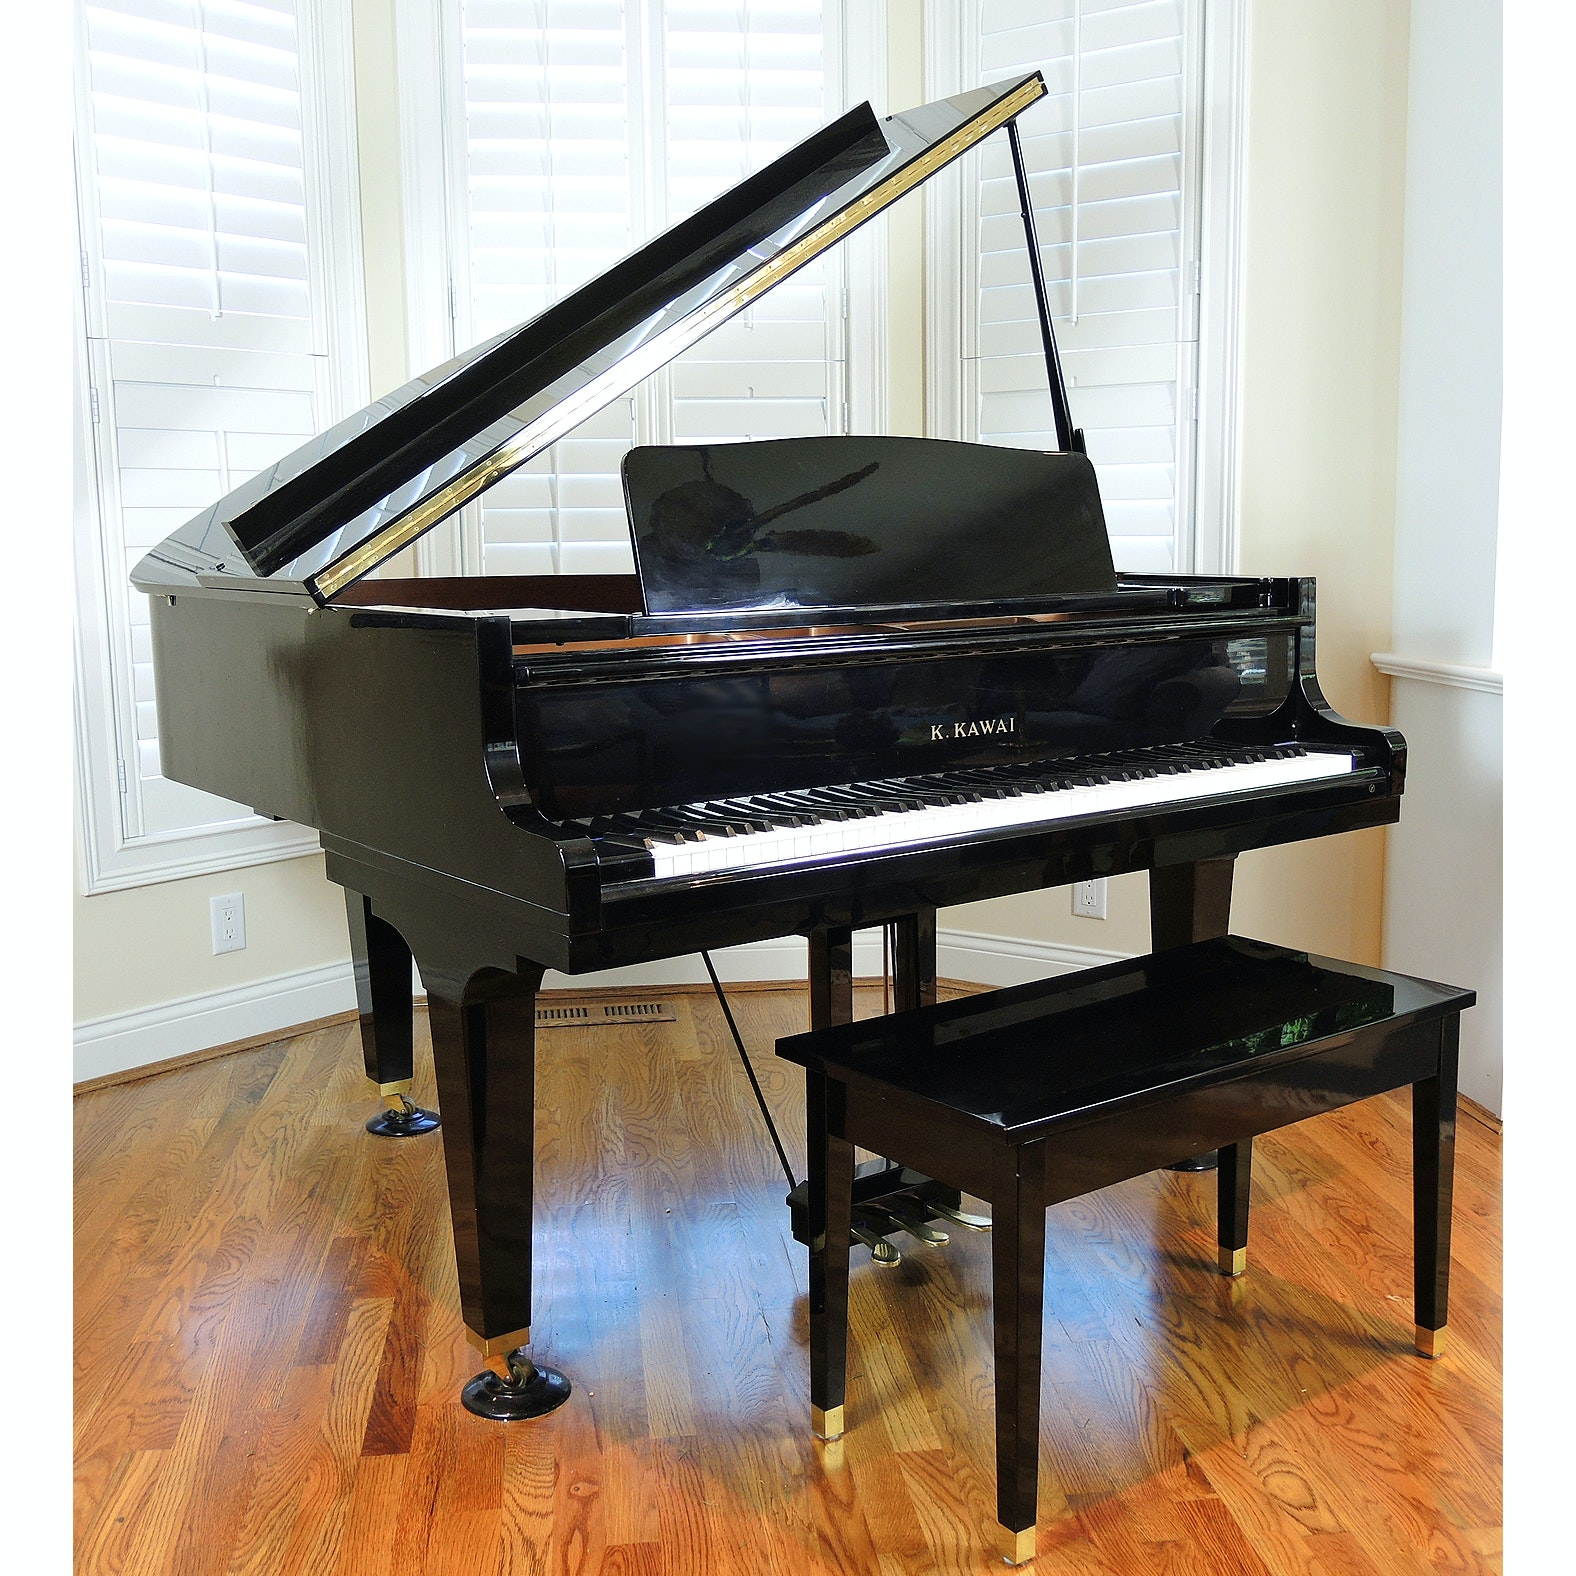 "K. Kawai 5'1"" GE-1 Baby Grand Piano with Bench"